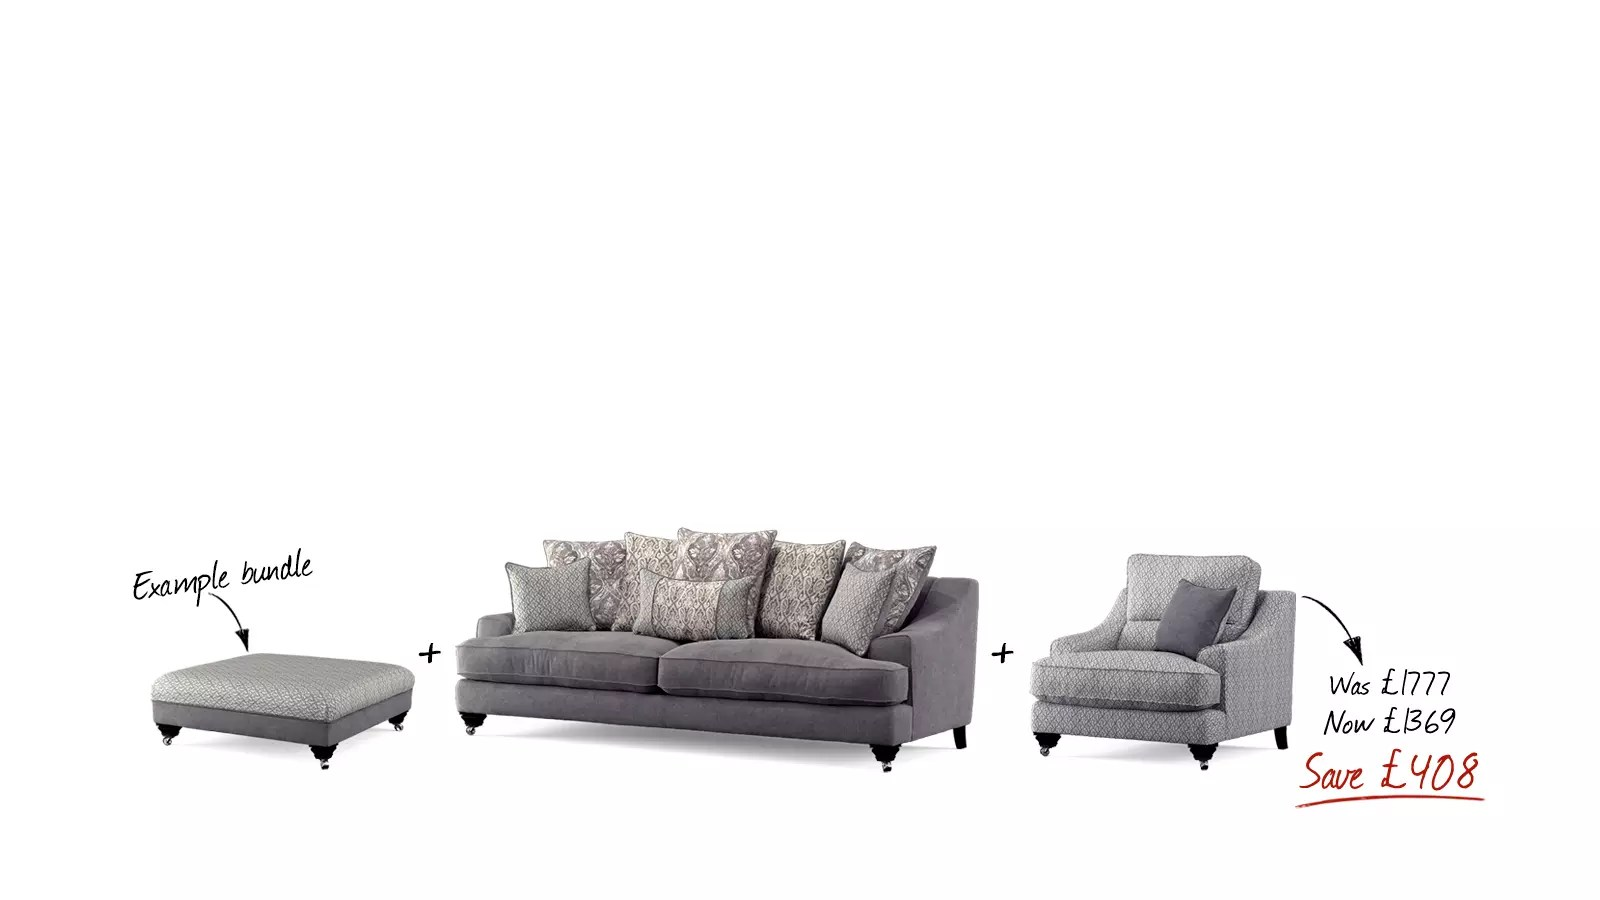 Sofa Outlet Cheshire Sofology Sale Up To 50 Off Ex Display And Outlet Sofas